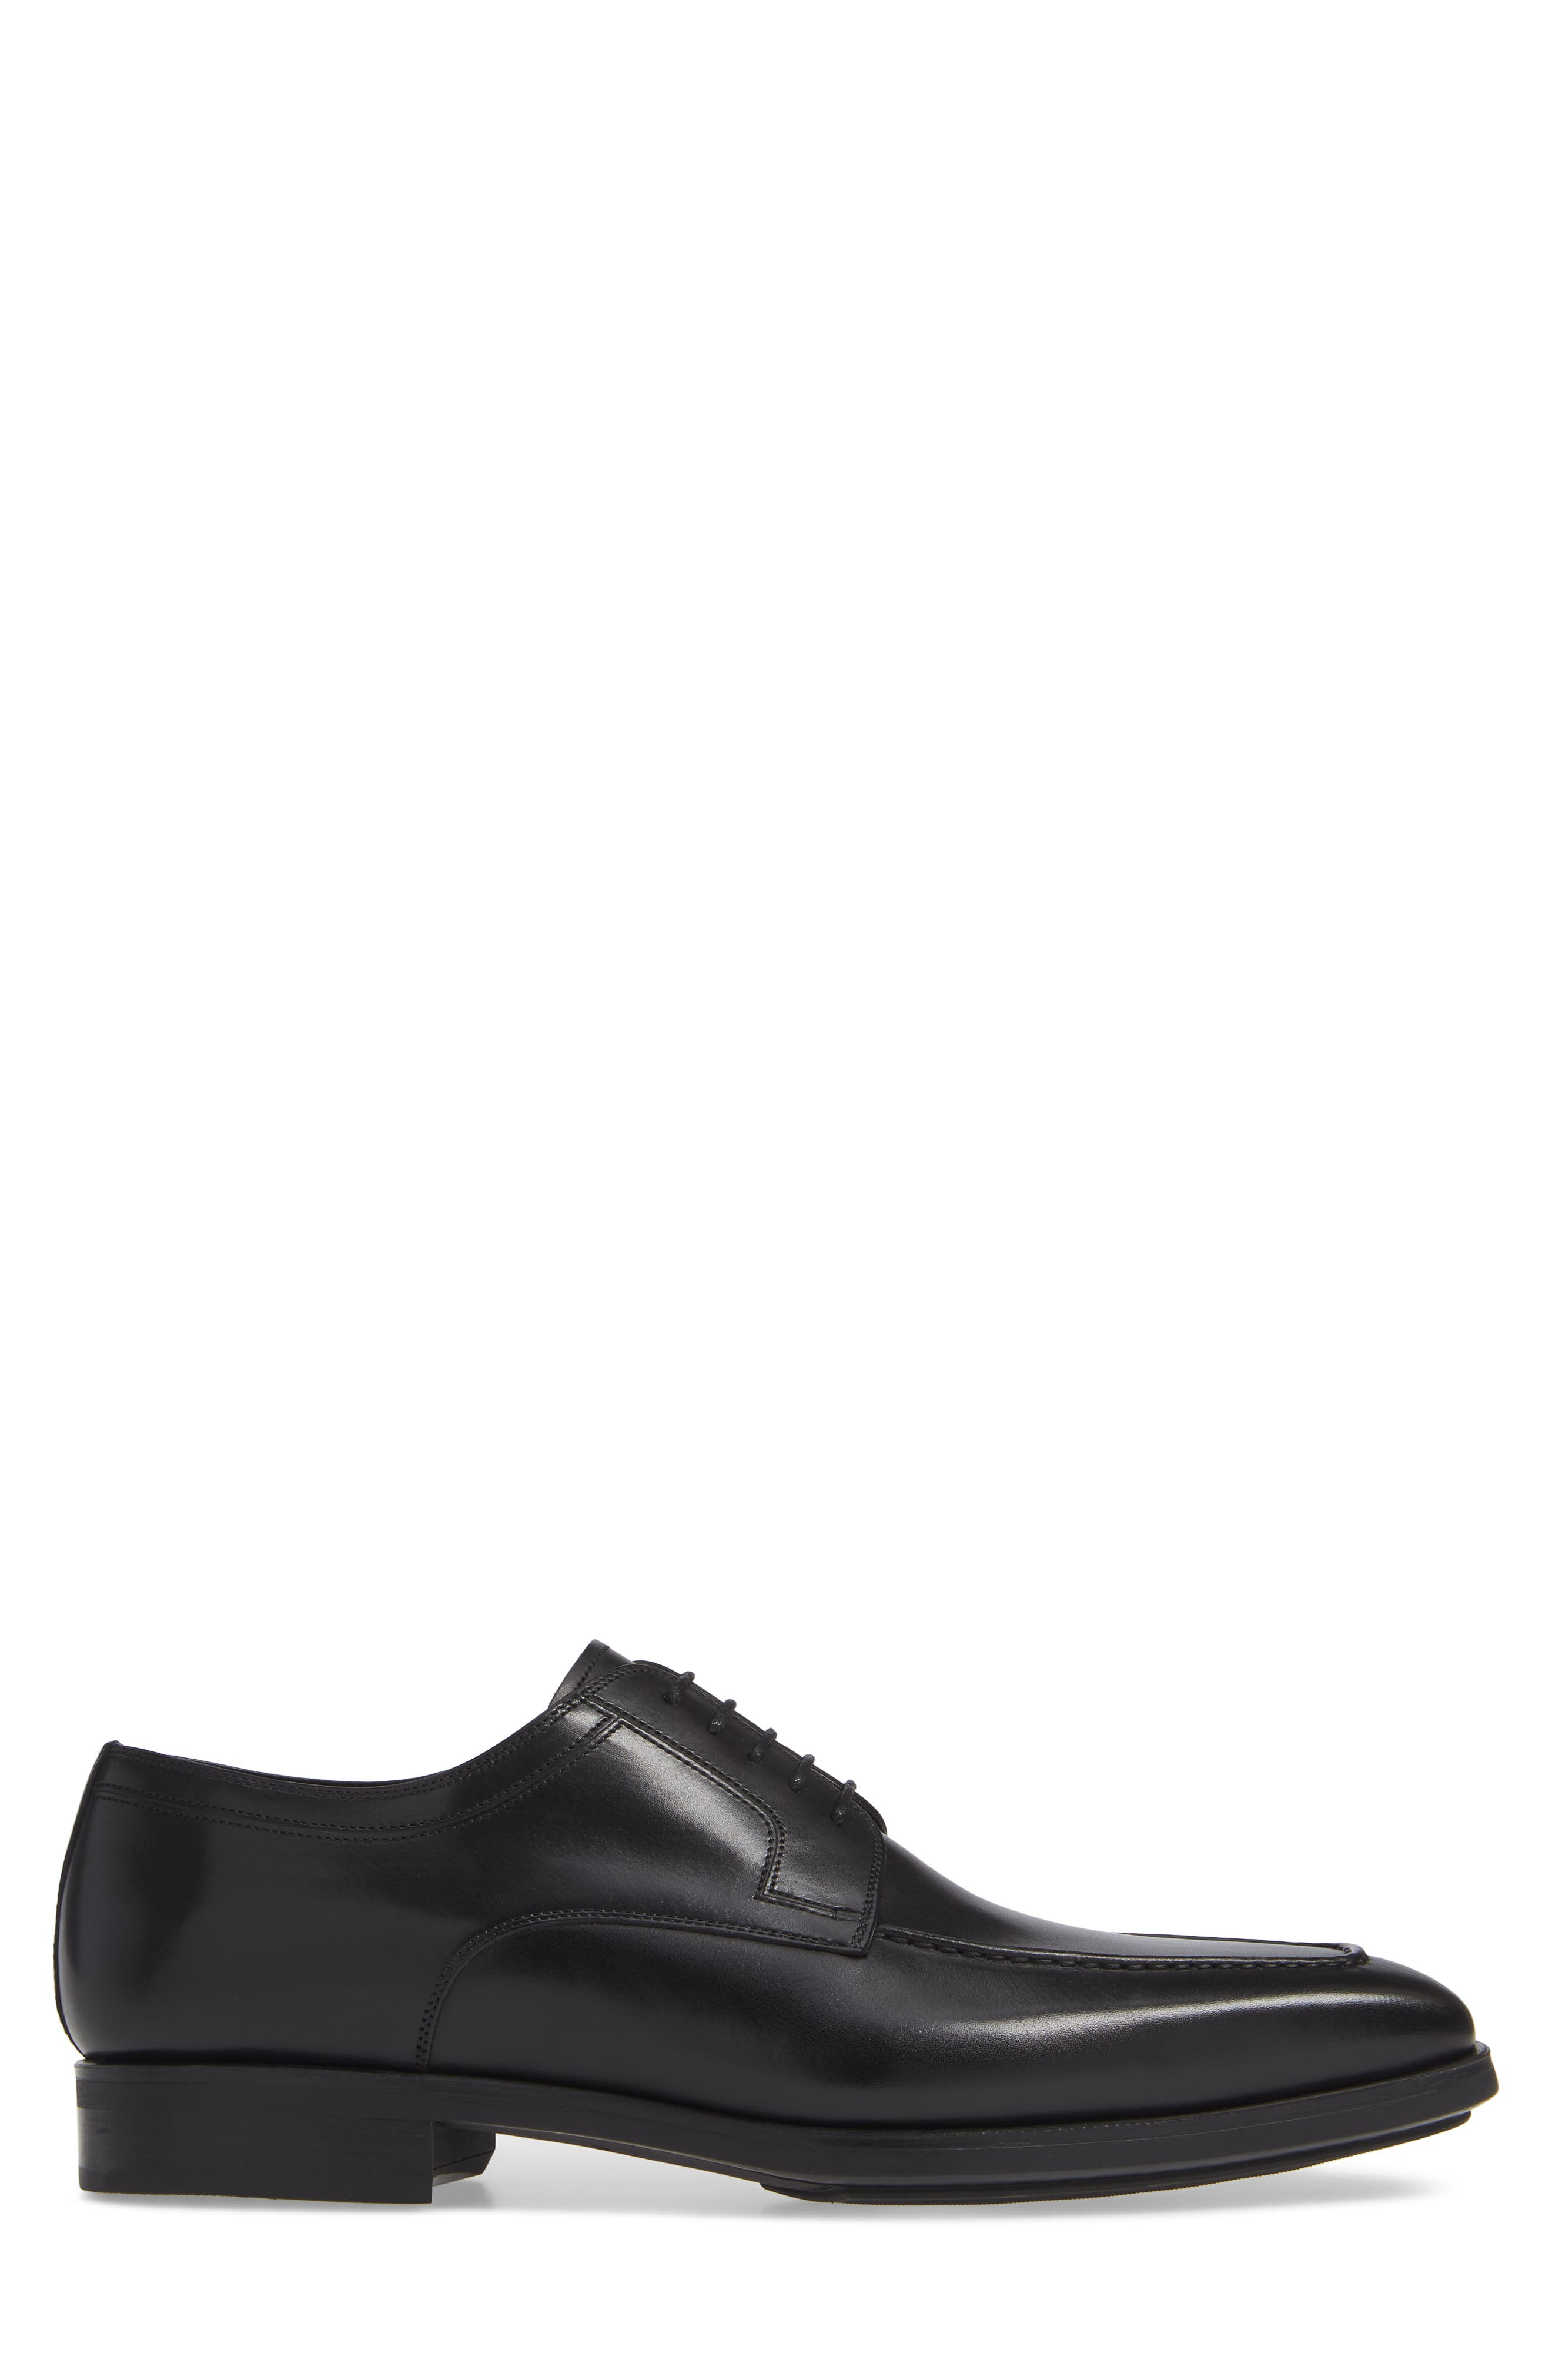 MAGNANNI, Romelo Diversa Apron Toe Derby, Alternate thumbnail 3, color, BLACK LEATHER